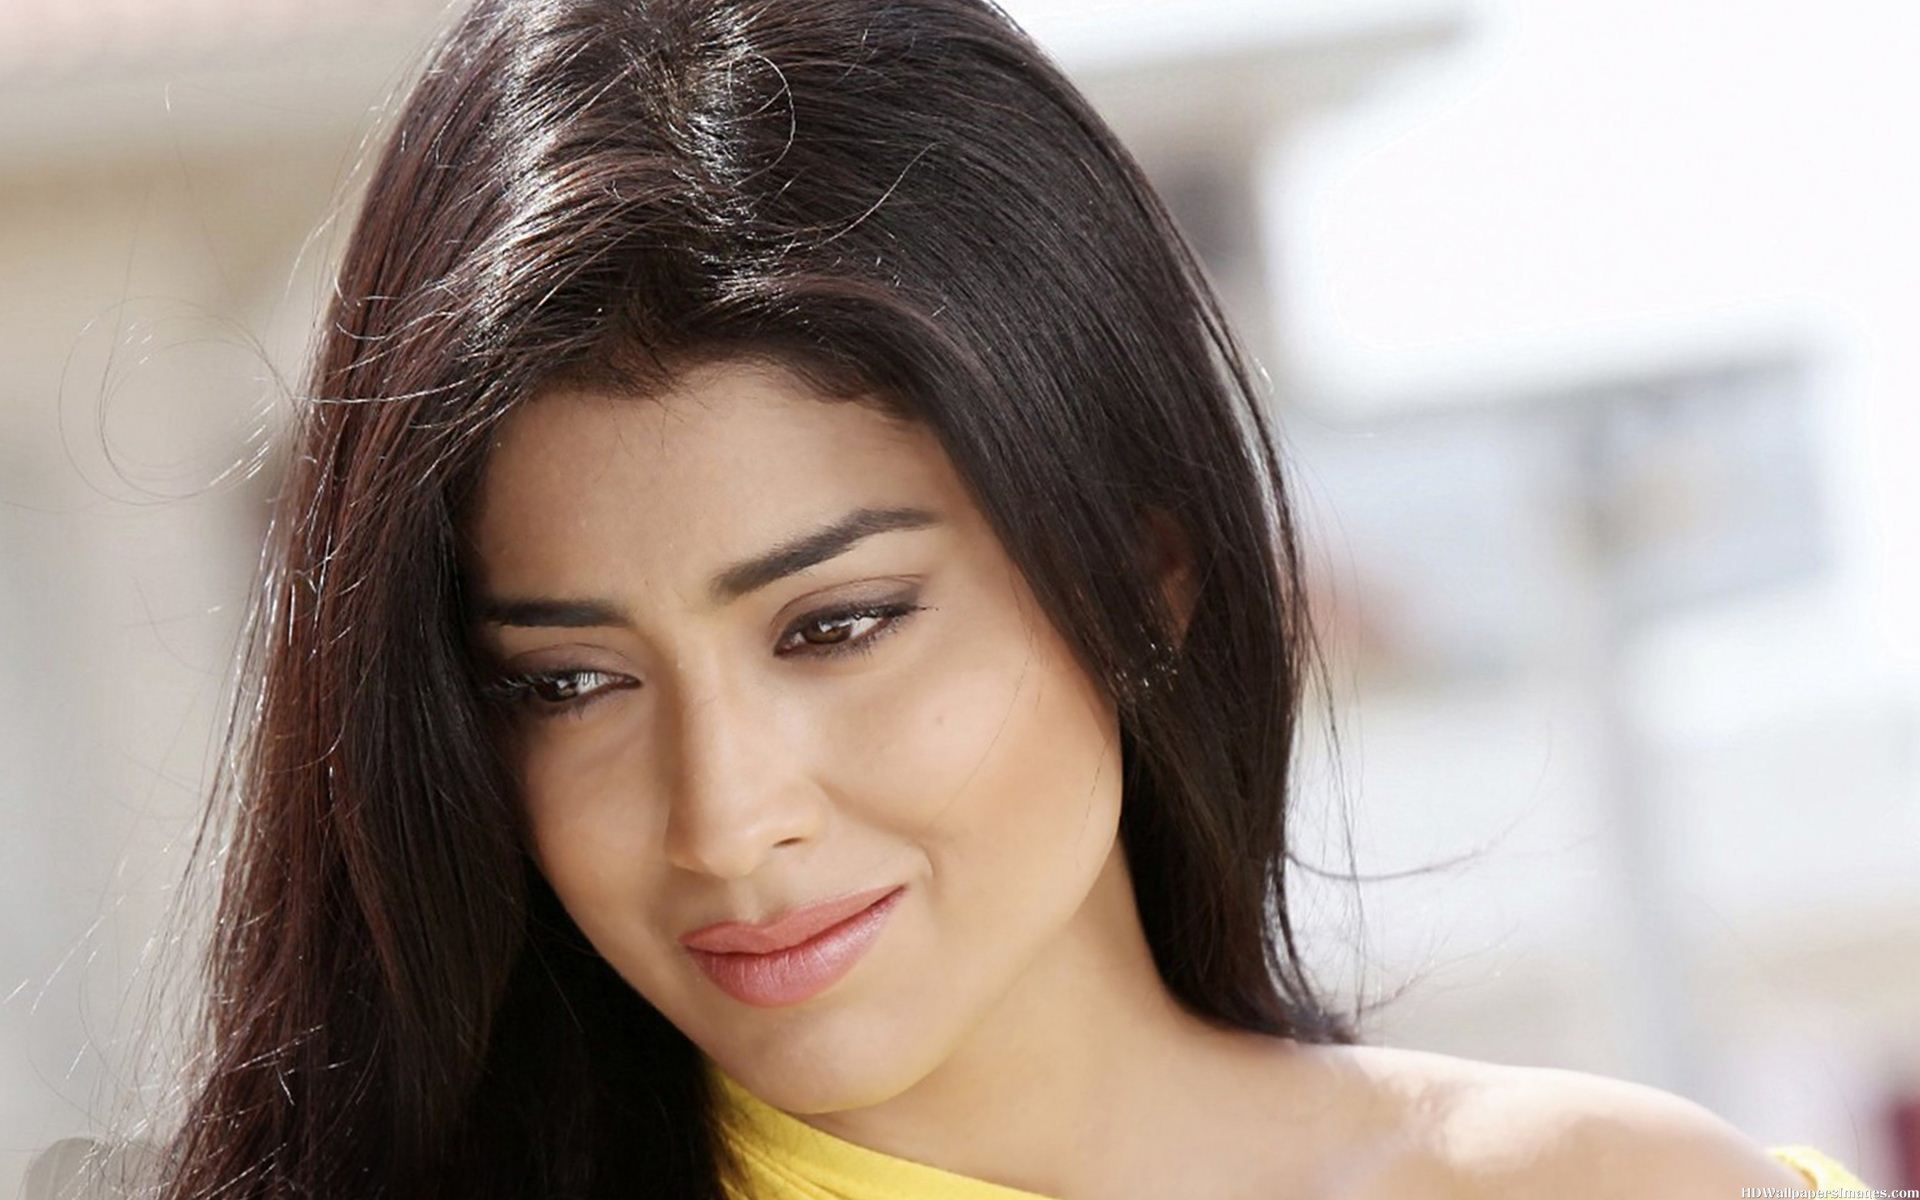 Indian Girl Wallpaper Free Download Best Of Shriya Saran Hot Amp Sexy Photo Wallpapers Latest